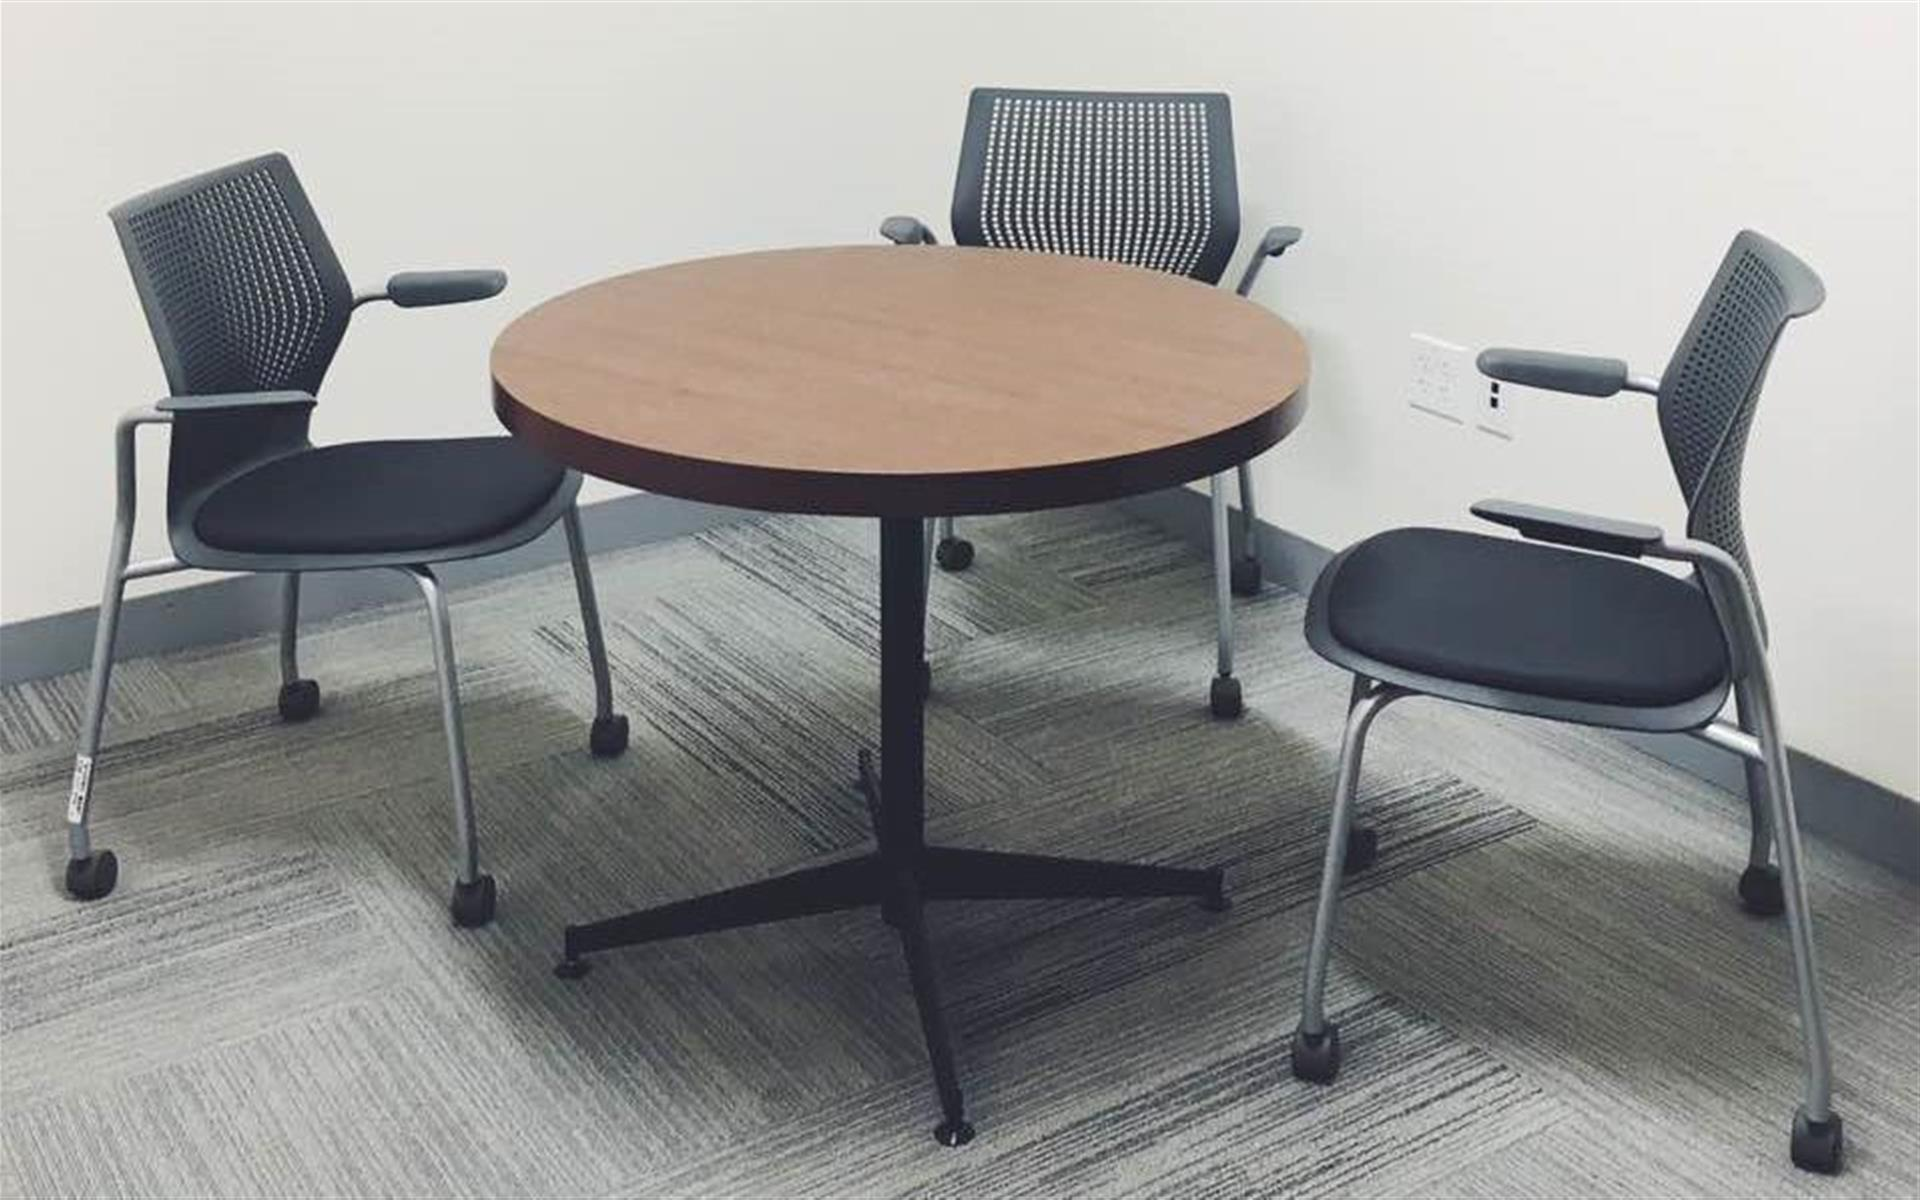 ZGC Innovation Center - ROOM 1043-Small Size Meeting Room